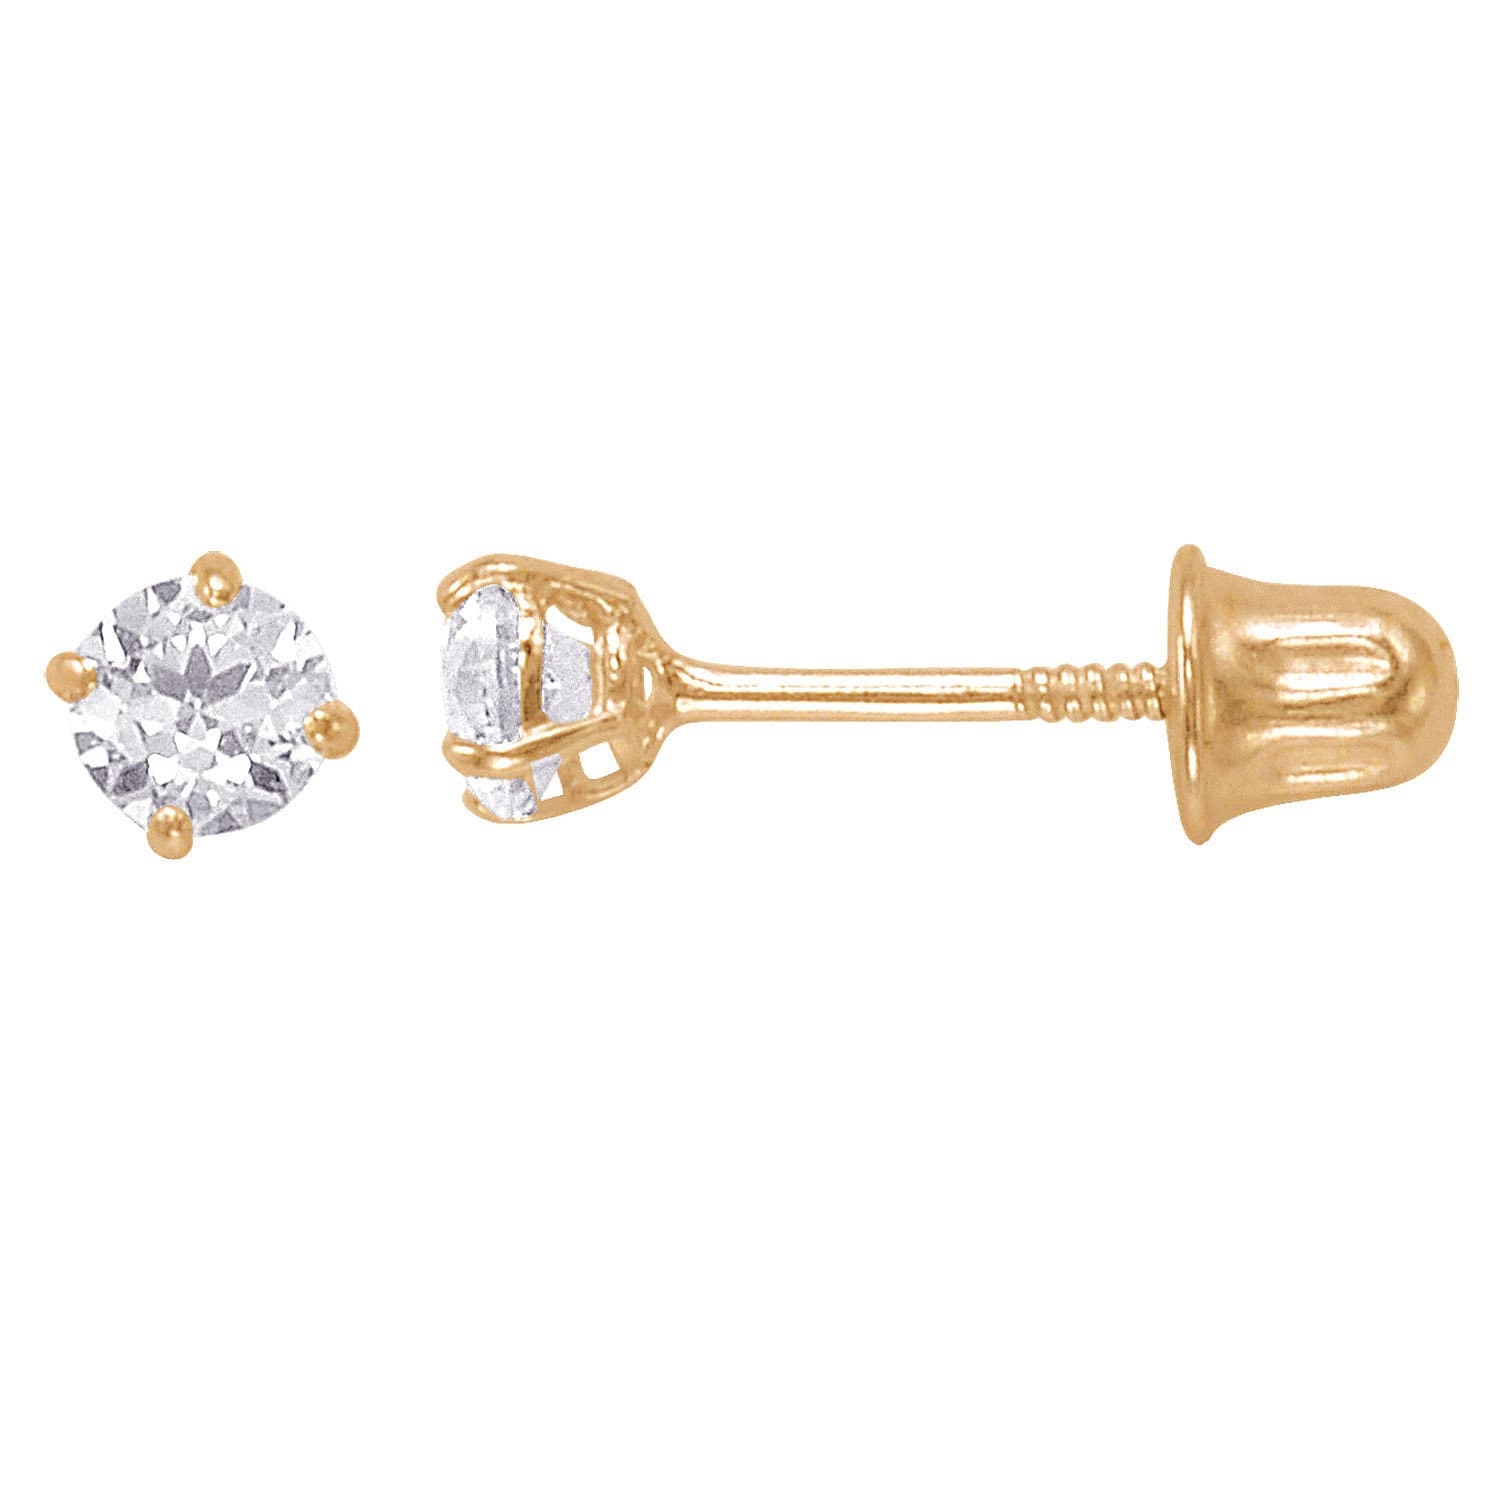 14k Solid Gold Round 3mm Superbright Back Cubic Zirconia Stud Earrings